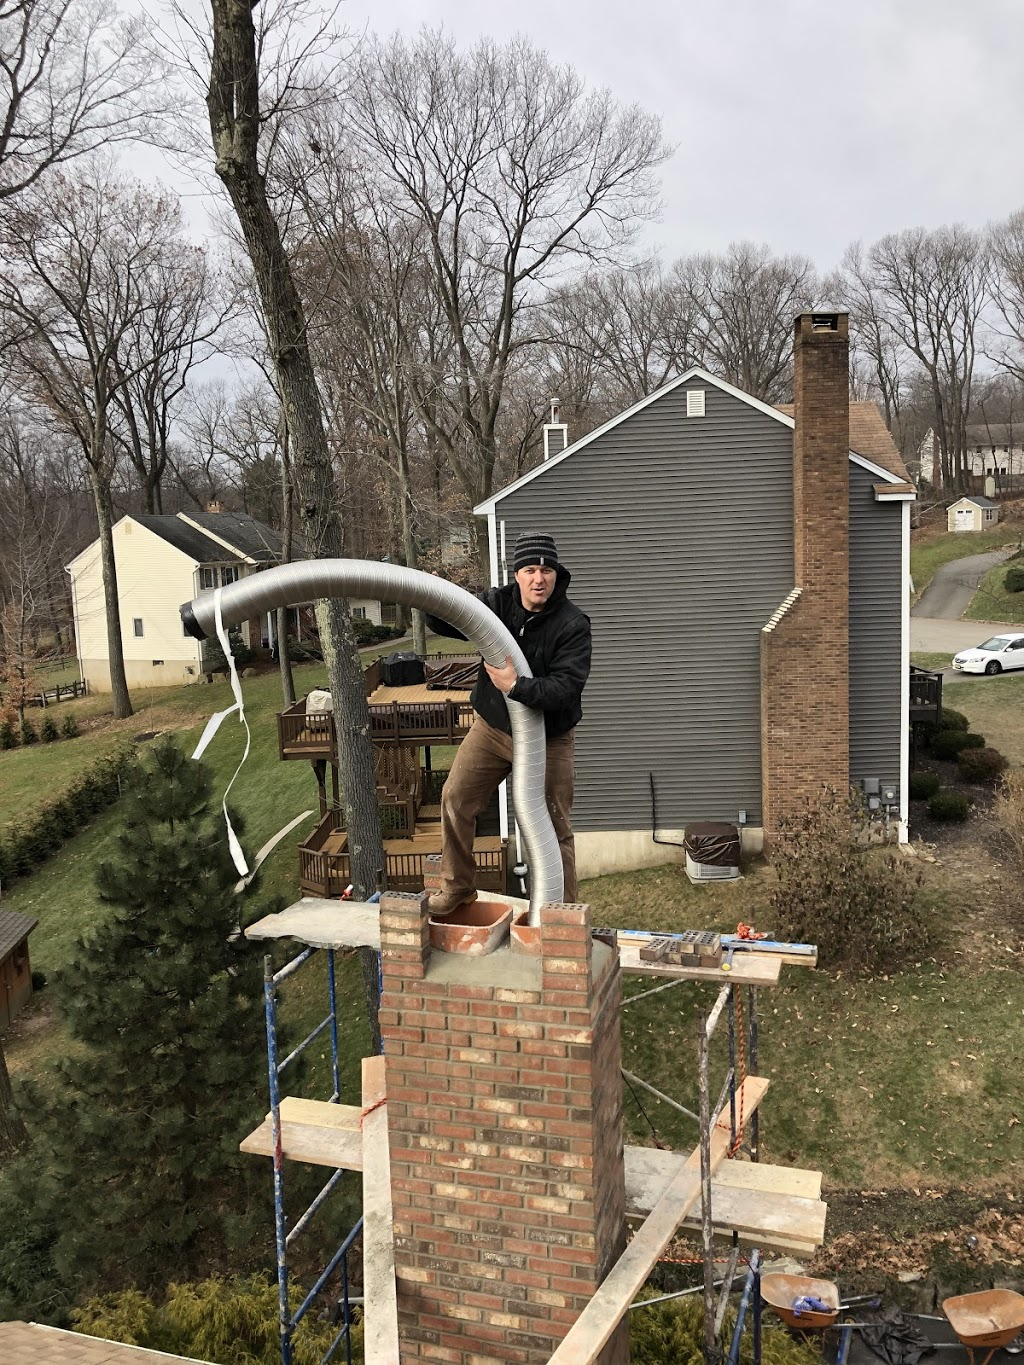 American Sons Professionals Roofing & Chimney - roofing contractor  | Photo 6 of 10 | Address: 425 Riverside Dr, Wayne, NJ 07470, USA | Phone: (201) 396-5509